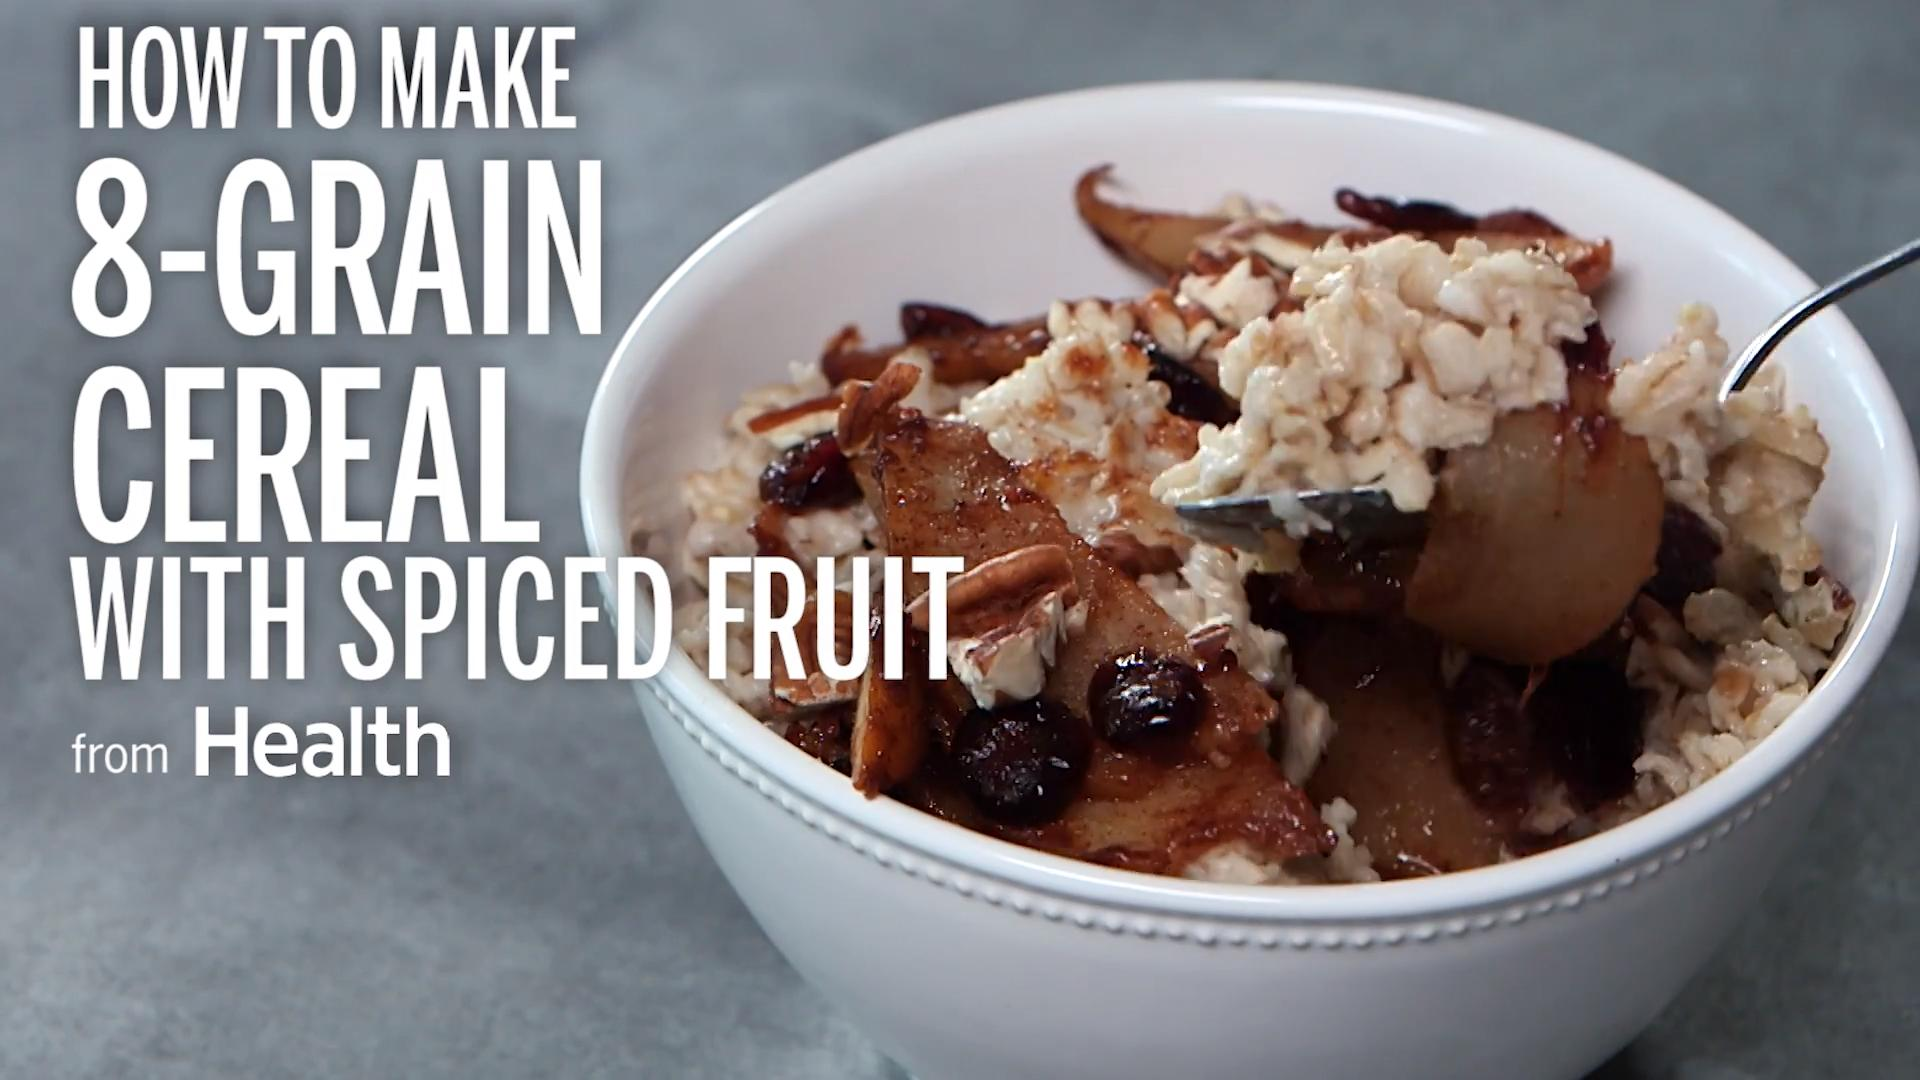 8-Grain Cereal With Spiced Fruit